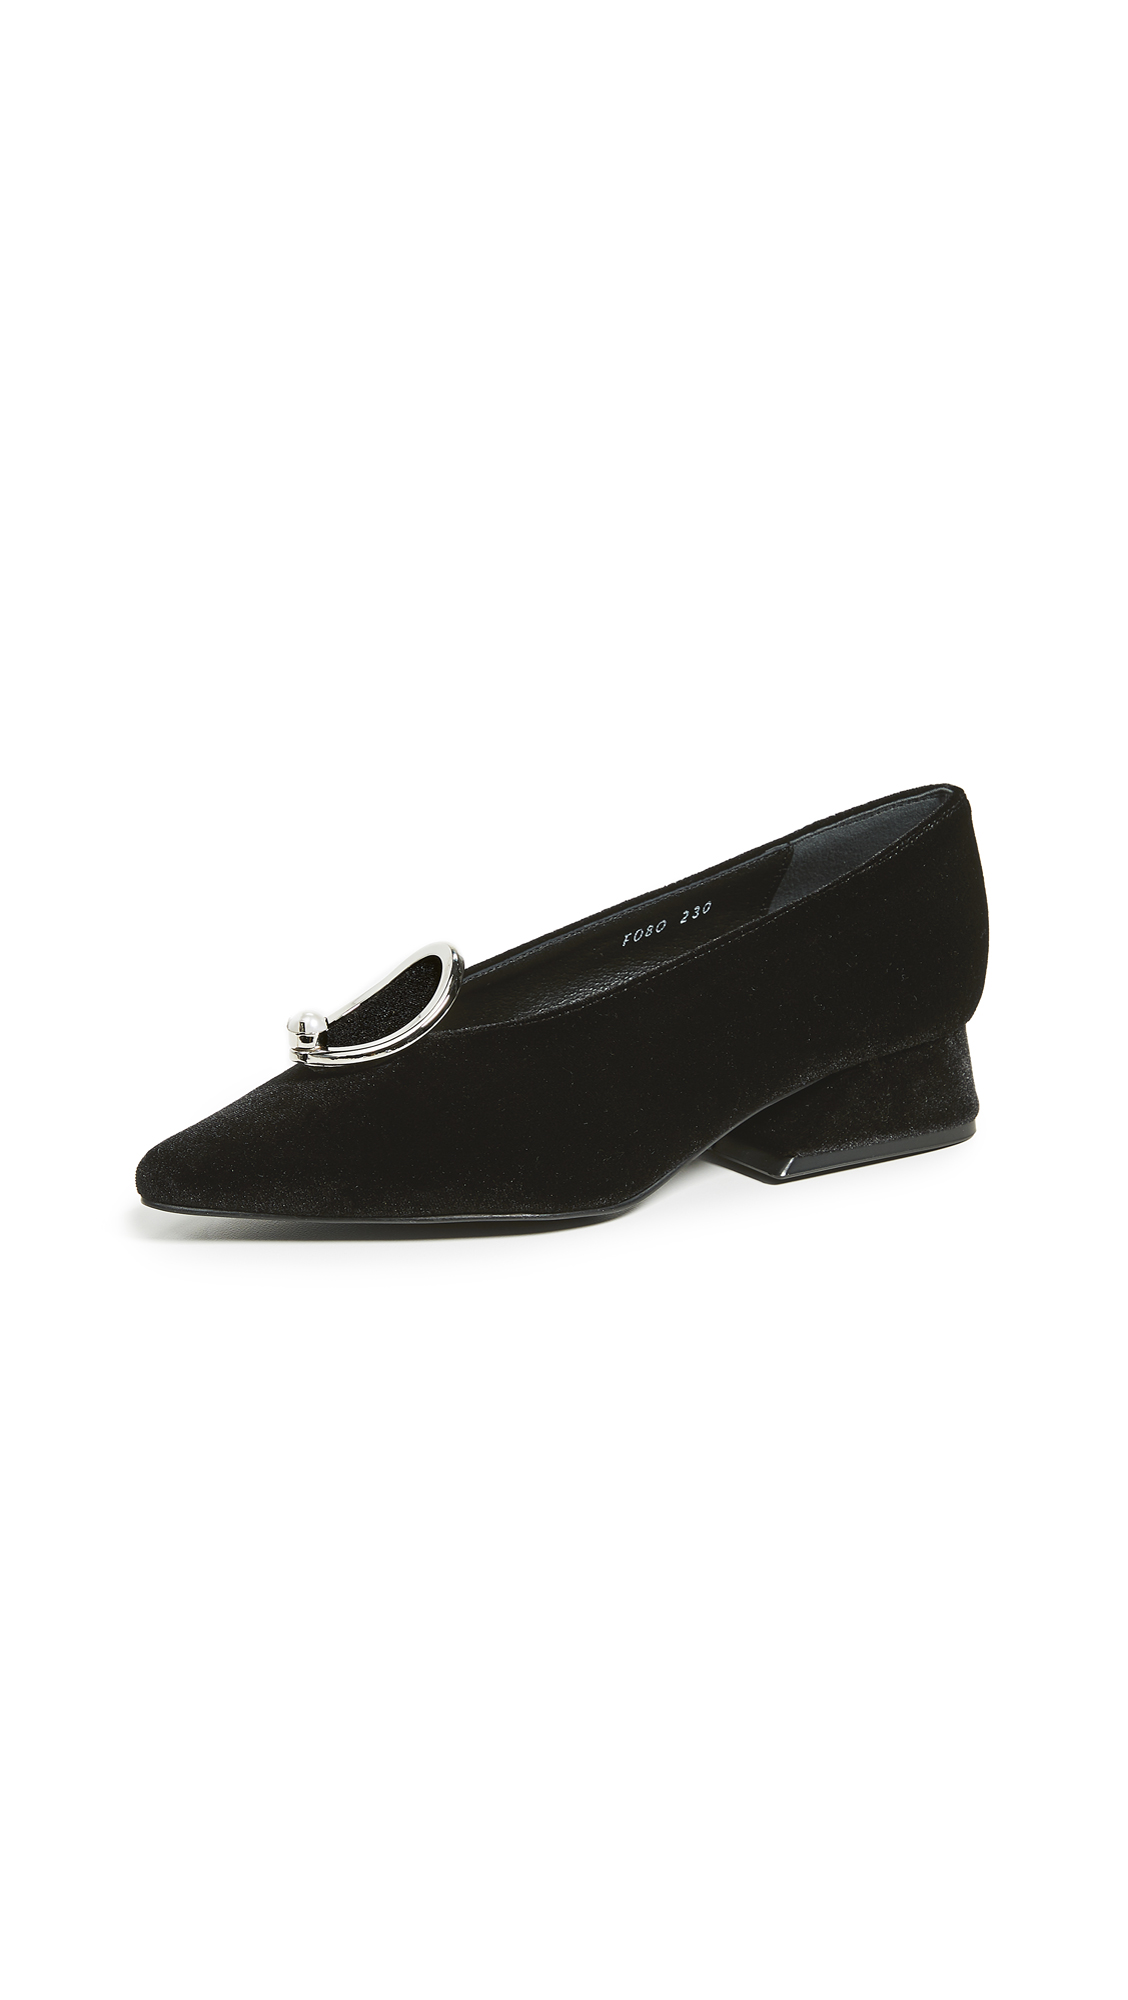 Yuul Yie Y-Heel Low Pumps - Black